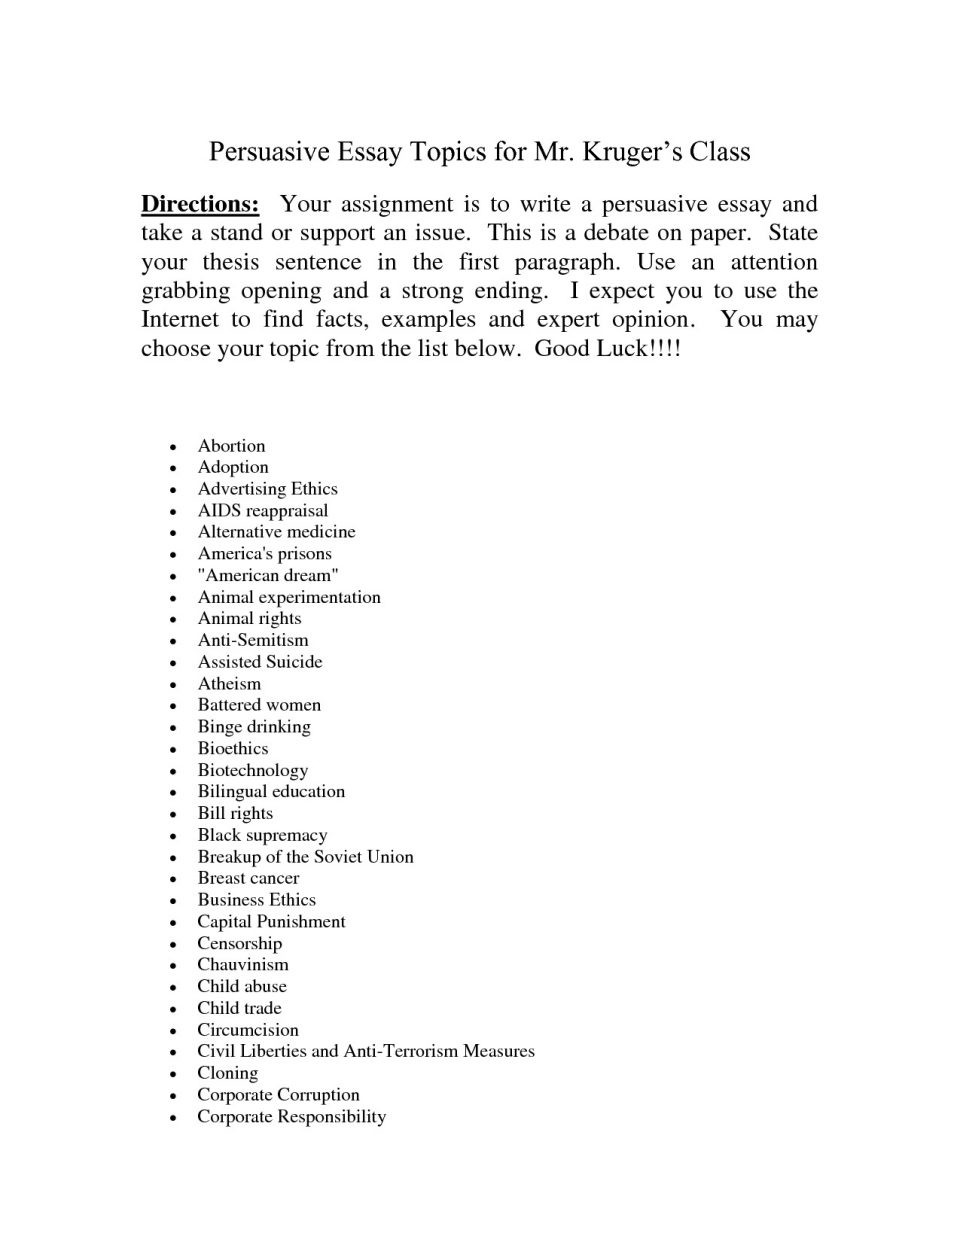 009 Topic For Essay Barca Fontanacountryinn Within Good Persuasive Narrative Topics To Write Abo Easy About Personal Descriptive Research Paper Informative Synthesis College Beautiful On A History Economics Biology 960